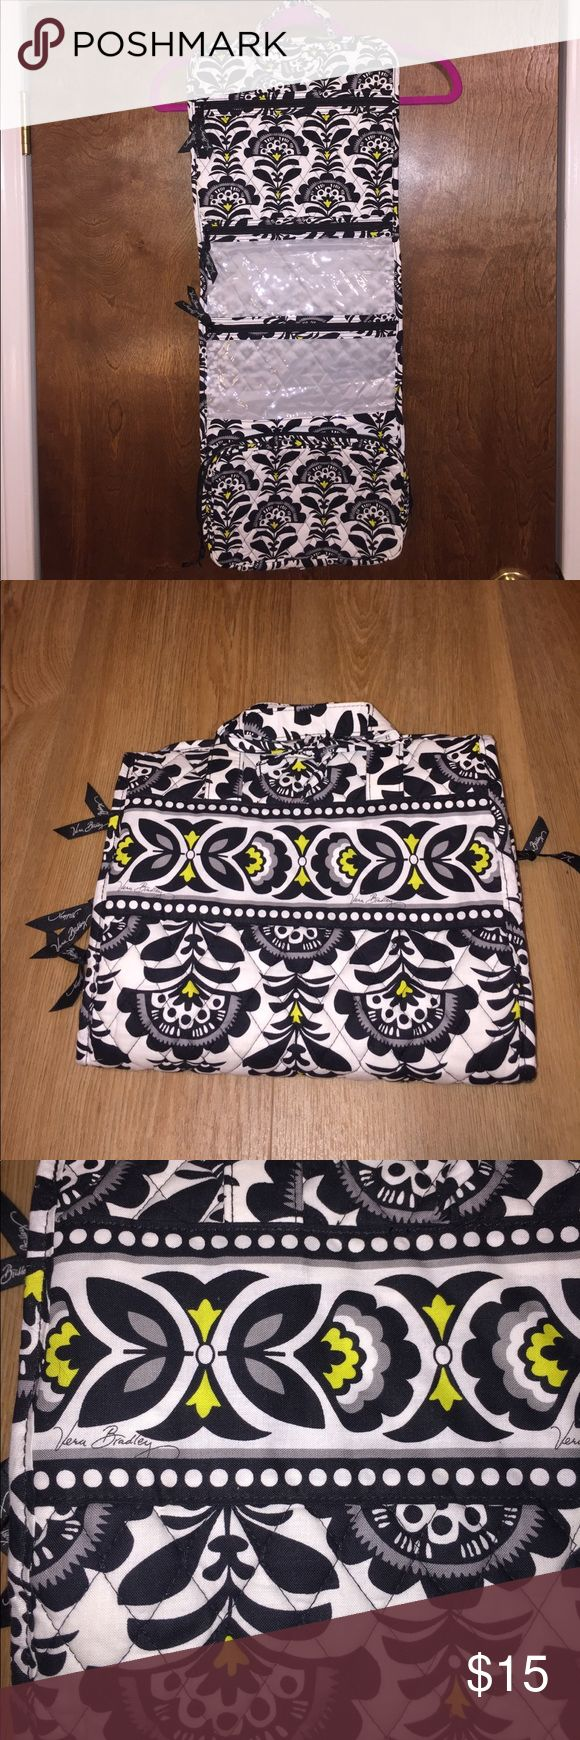 Vera Bradley travel organizer Like new Vera Bradley hanging travel organizer. 4 zipper compartments to store jewelry, hair accessories, makeup and whatever else you don't want to lose. Vera Bradley Bags